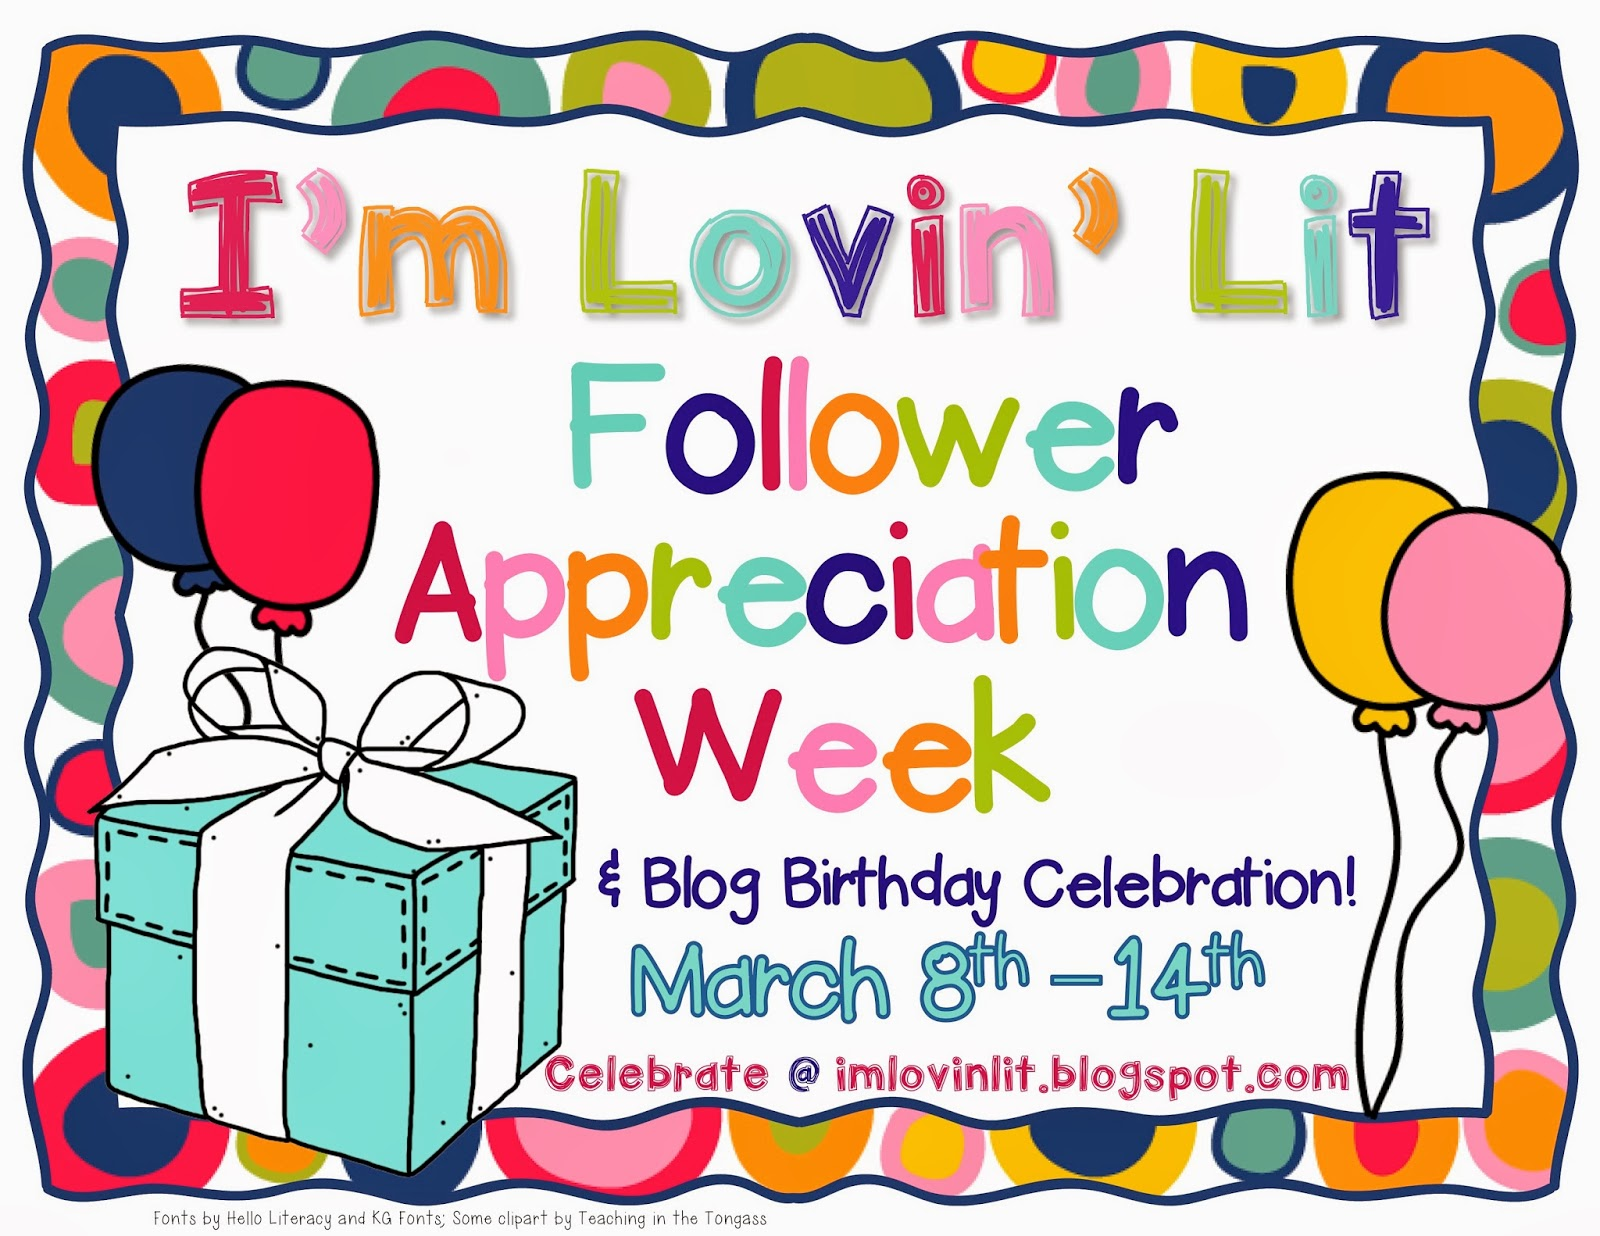 It's FOLLOWER APPRECIATION WEEK!